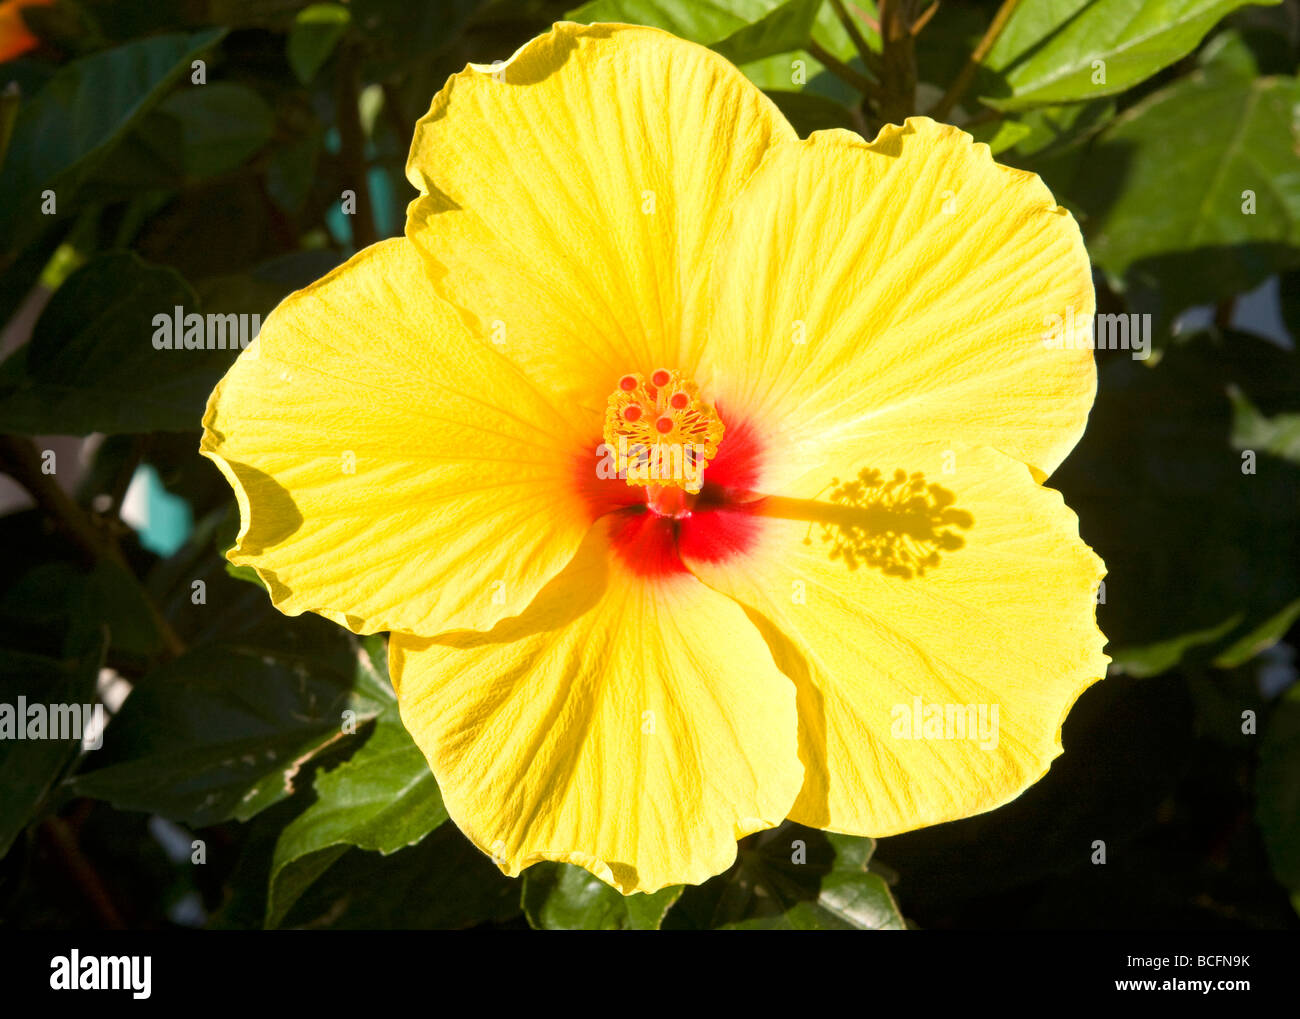 Yellow Hibiscus Flower With Red Center Stock Photo 24932255 Alamy